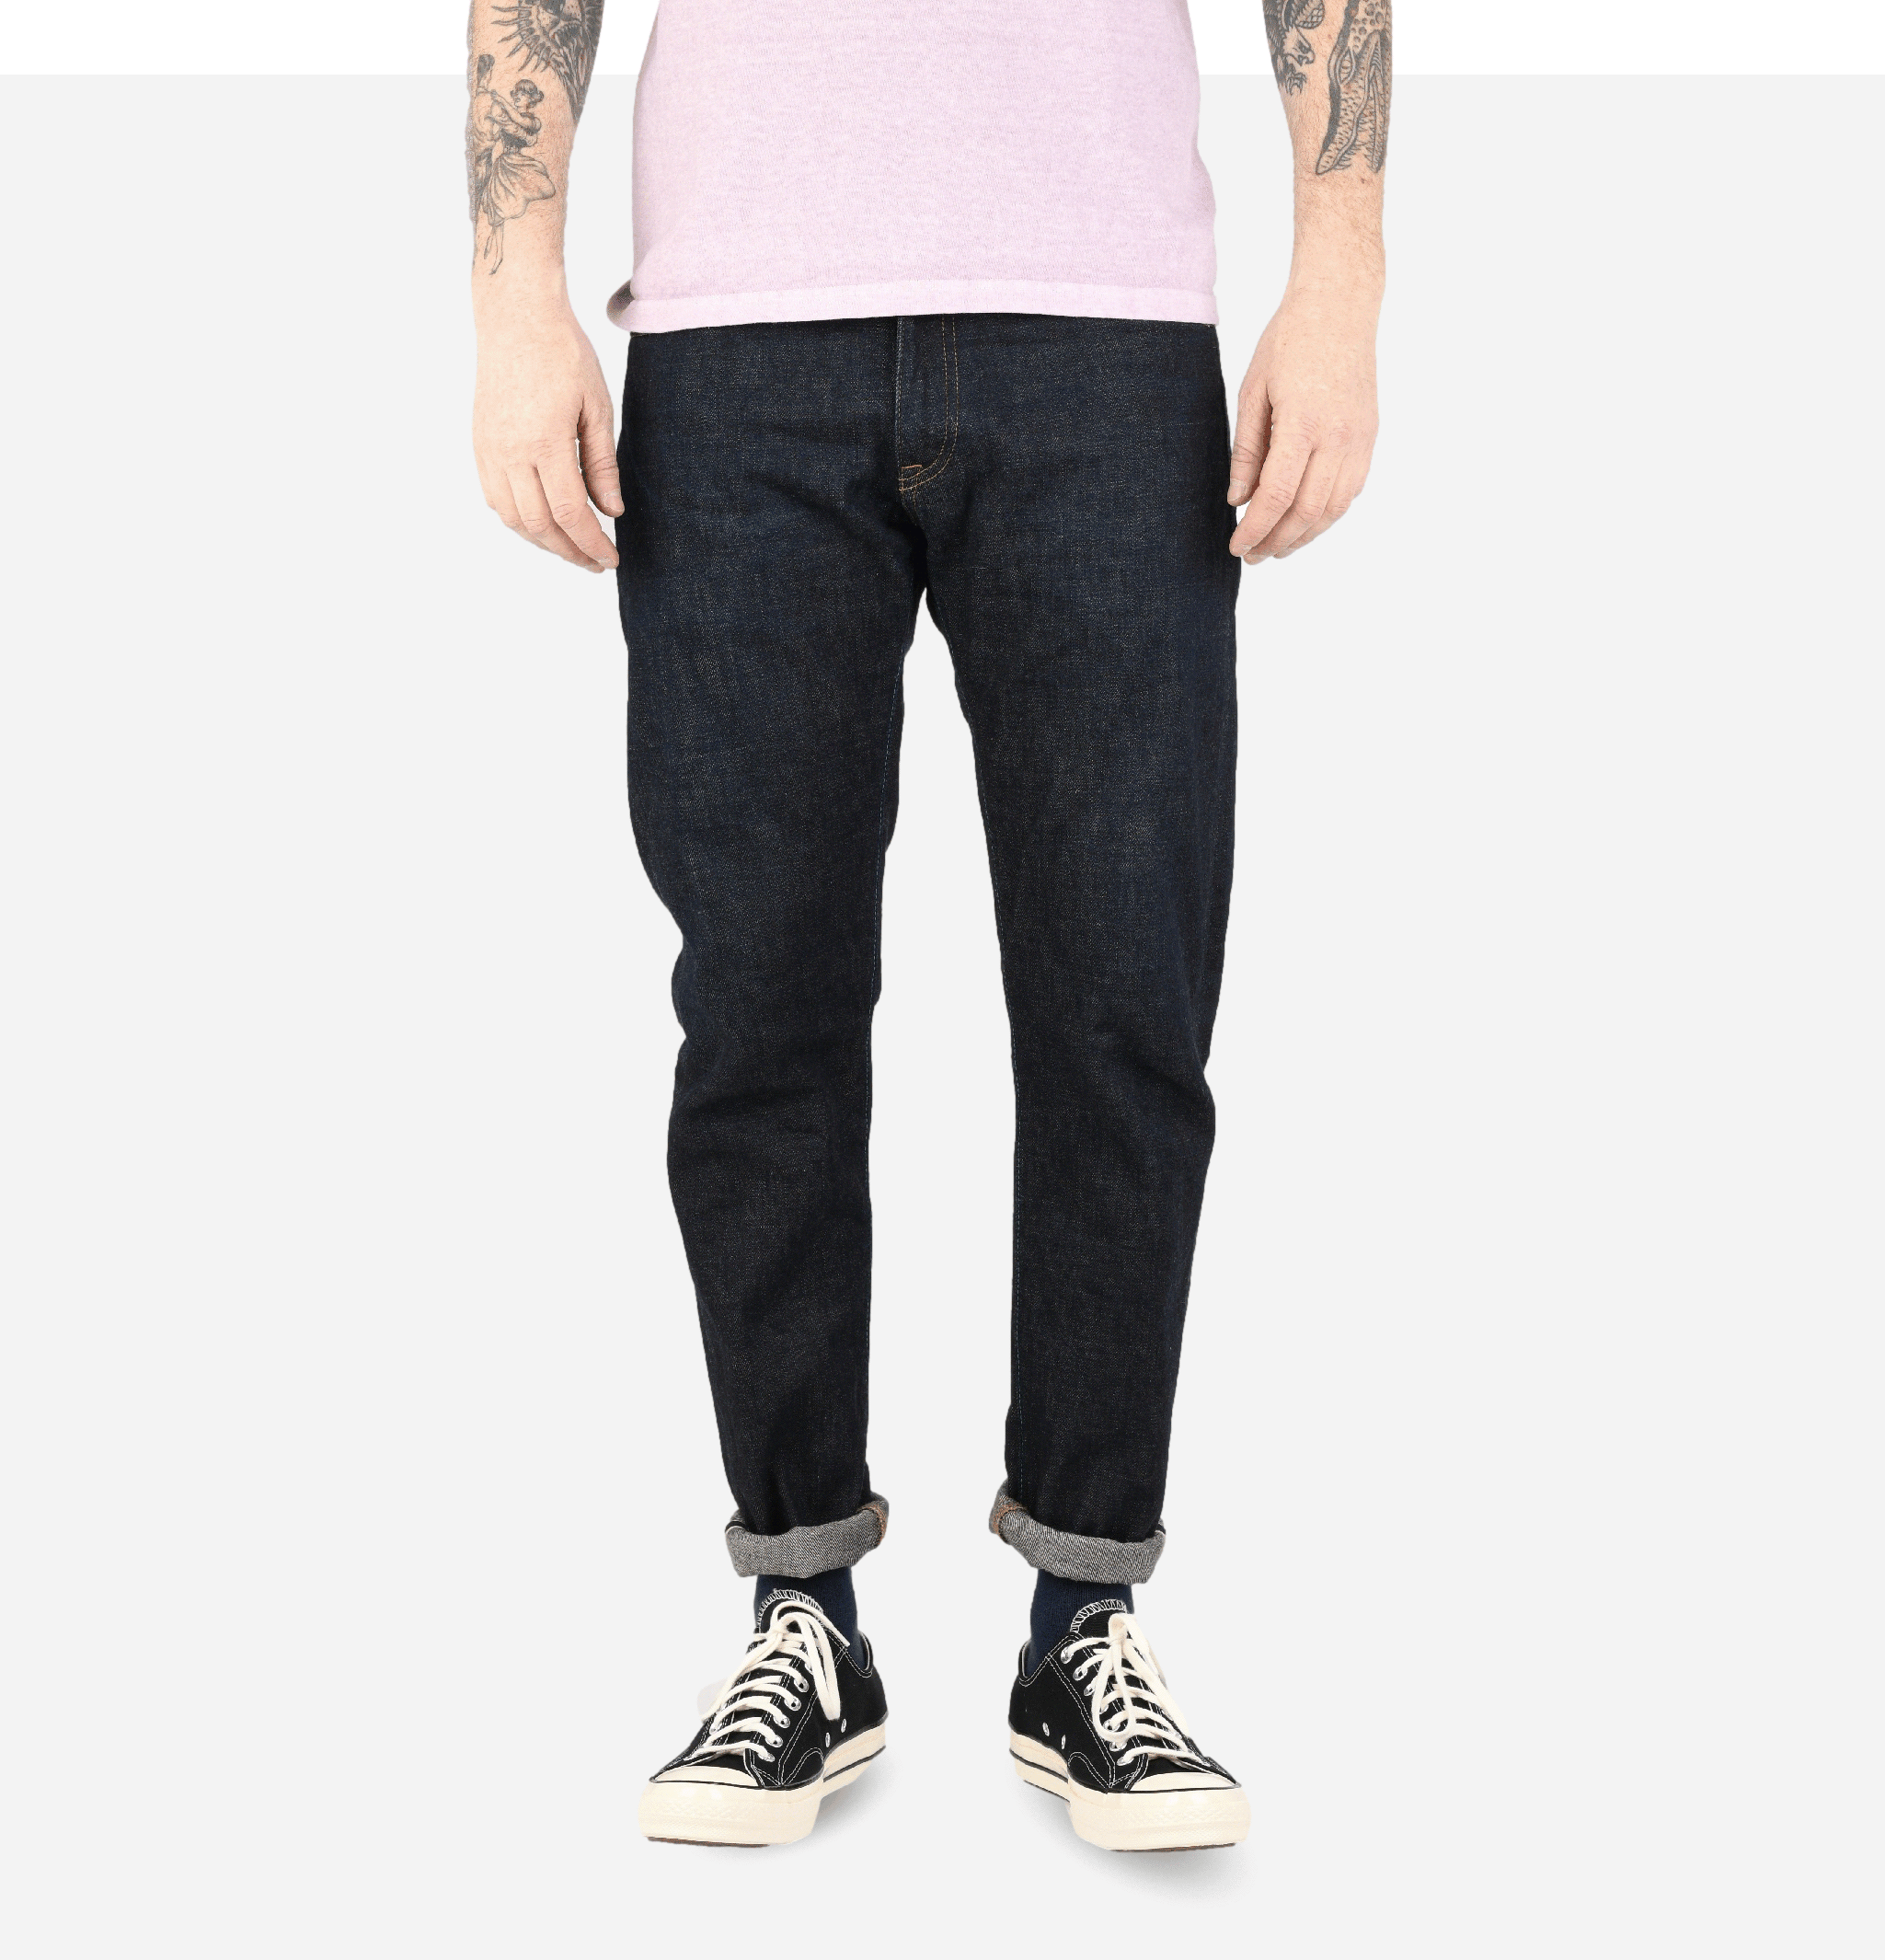 204 Tapered Jeans12.5...